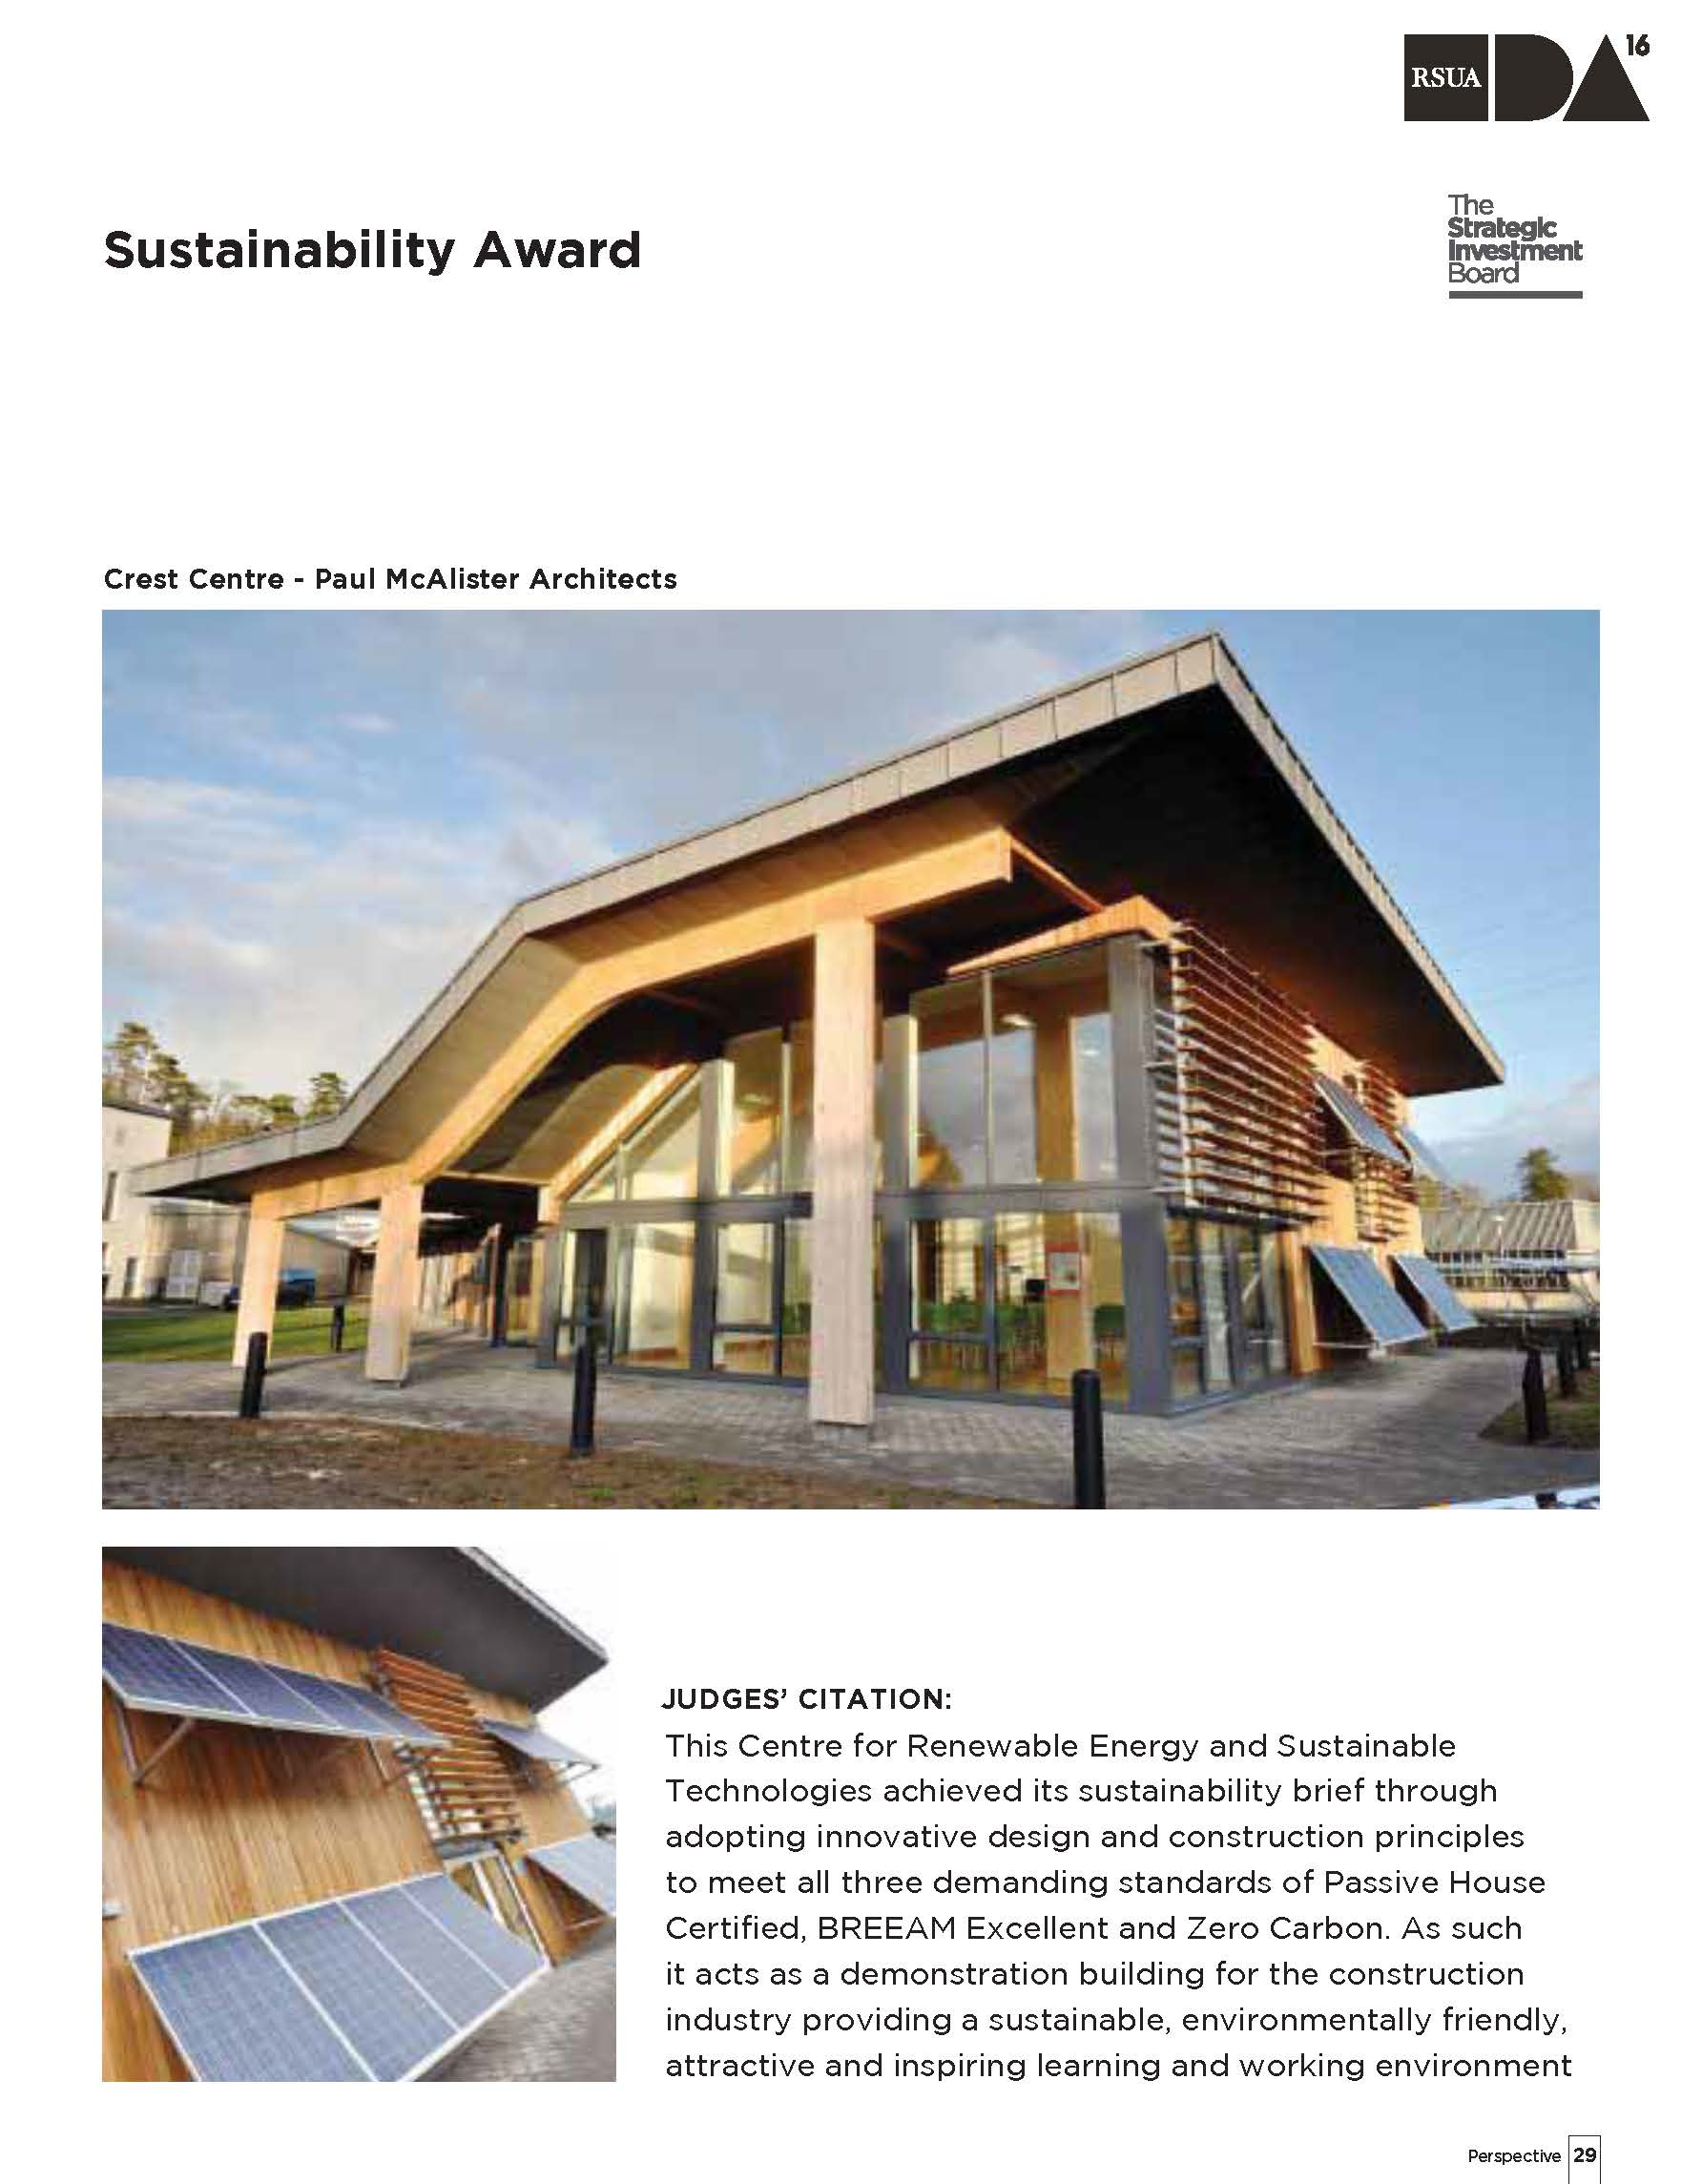 RSUA Awards Article - Perspective Magazine_Page_4.jpg